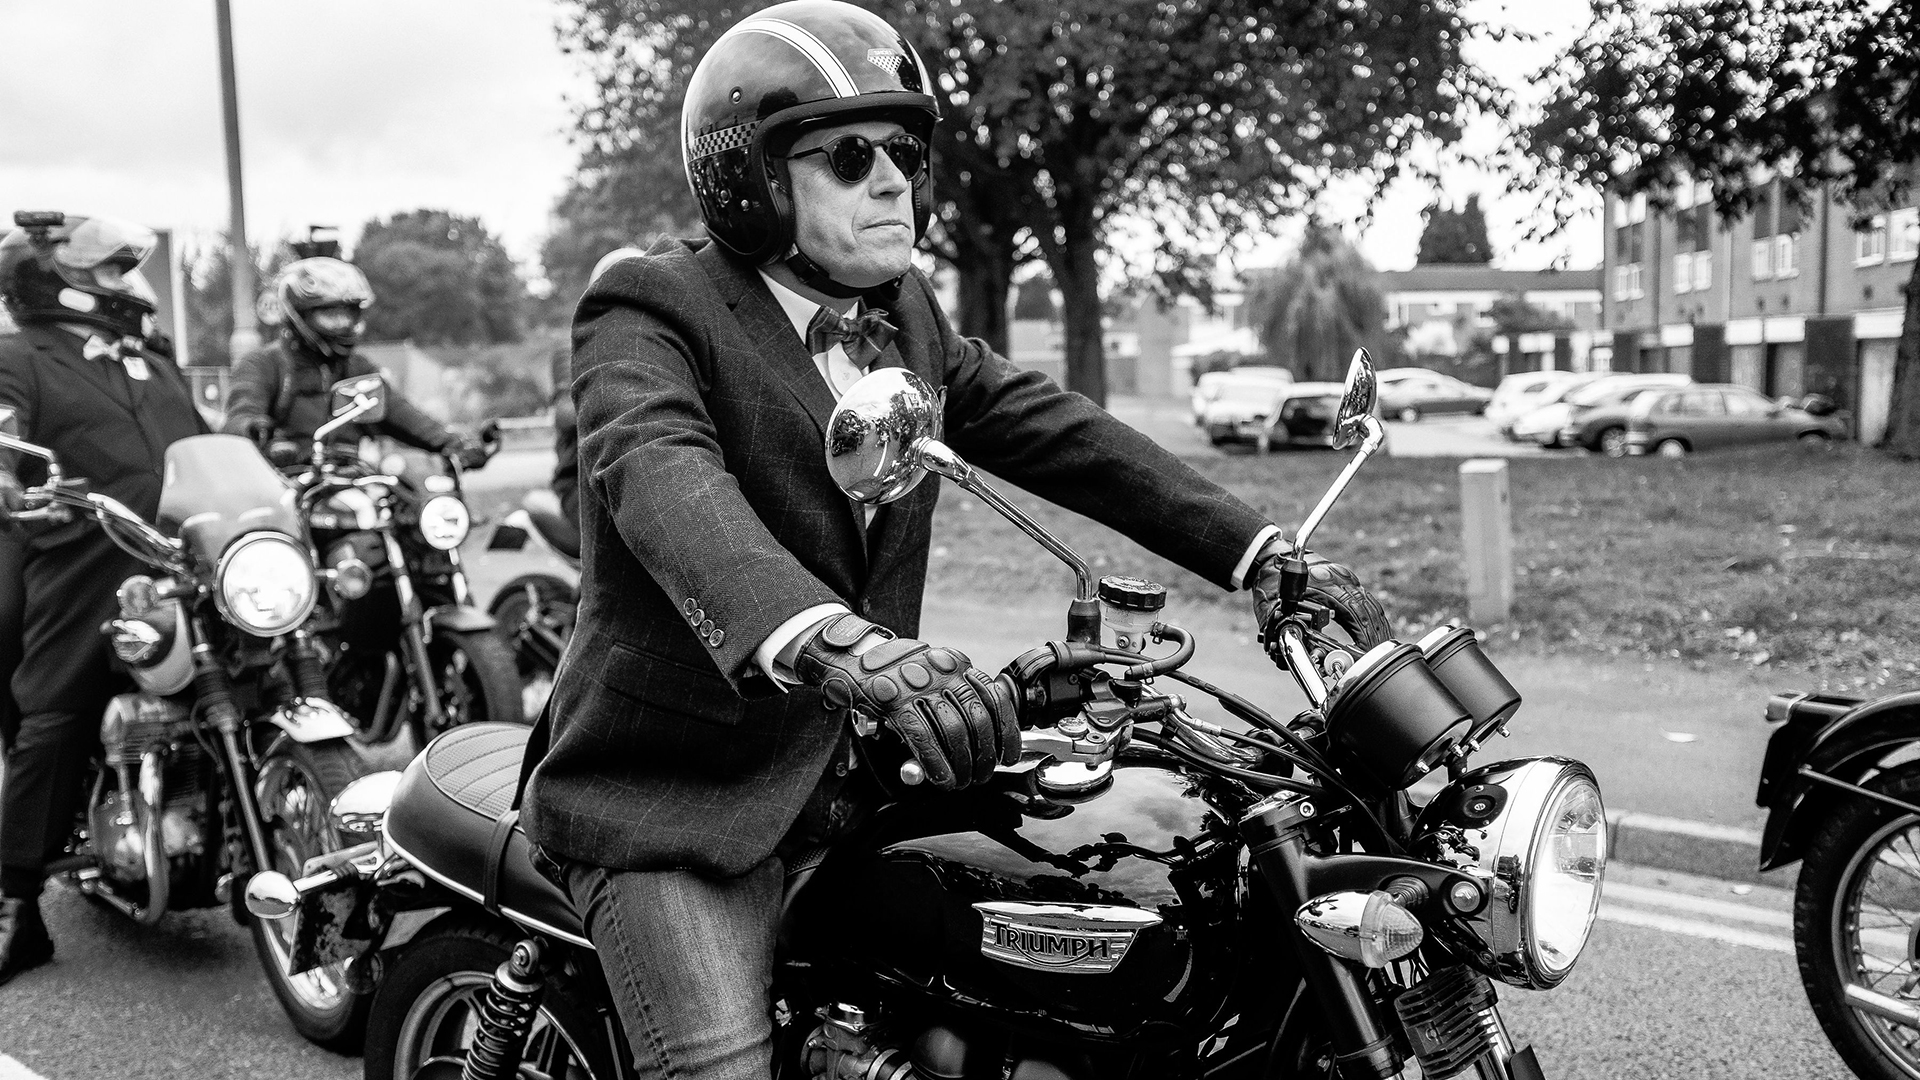 Triumph Rider taking in the experience of a Distinguished Gentlemen's Ride